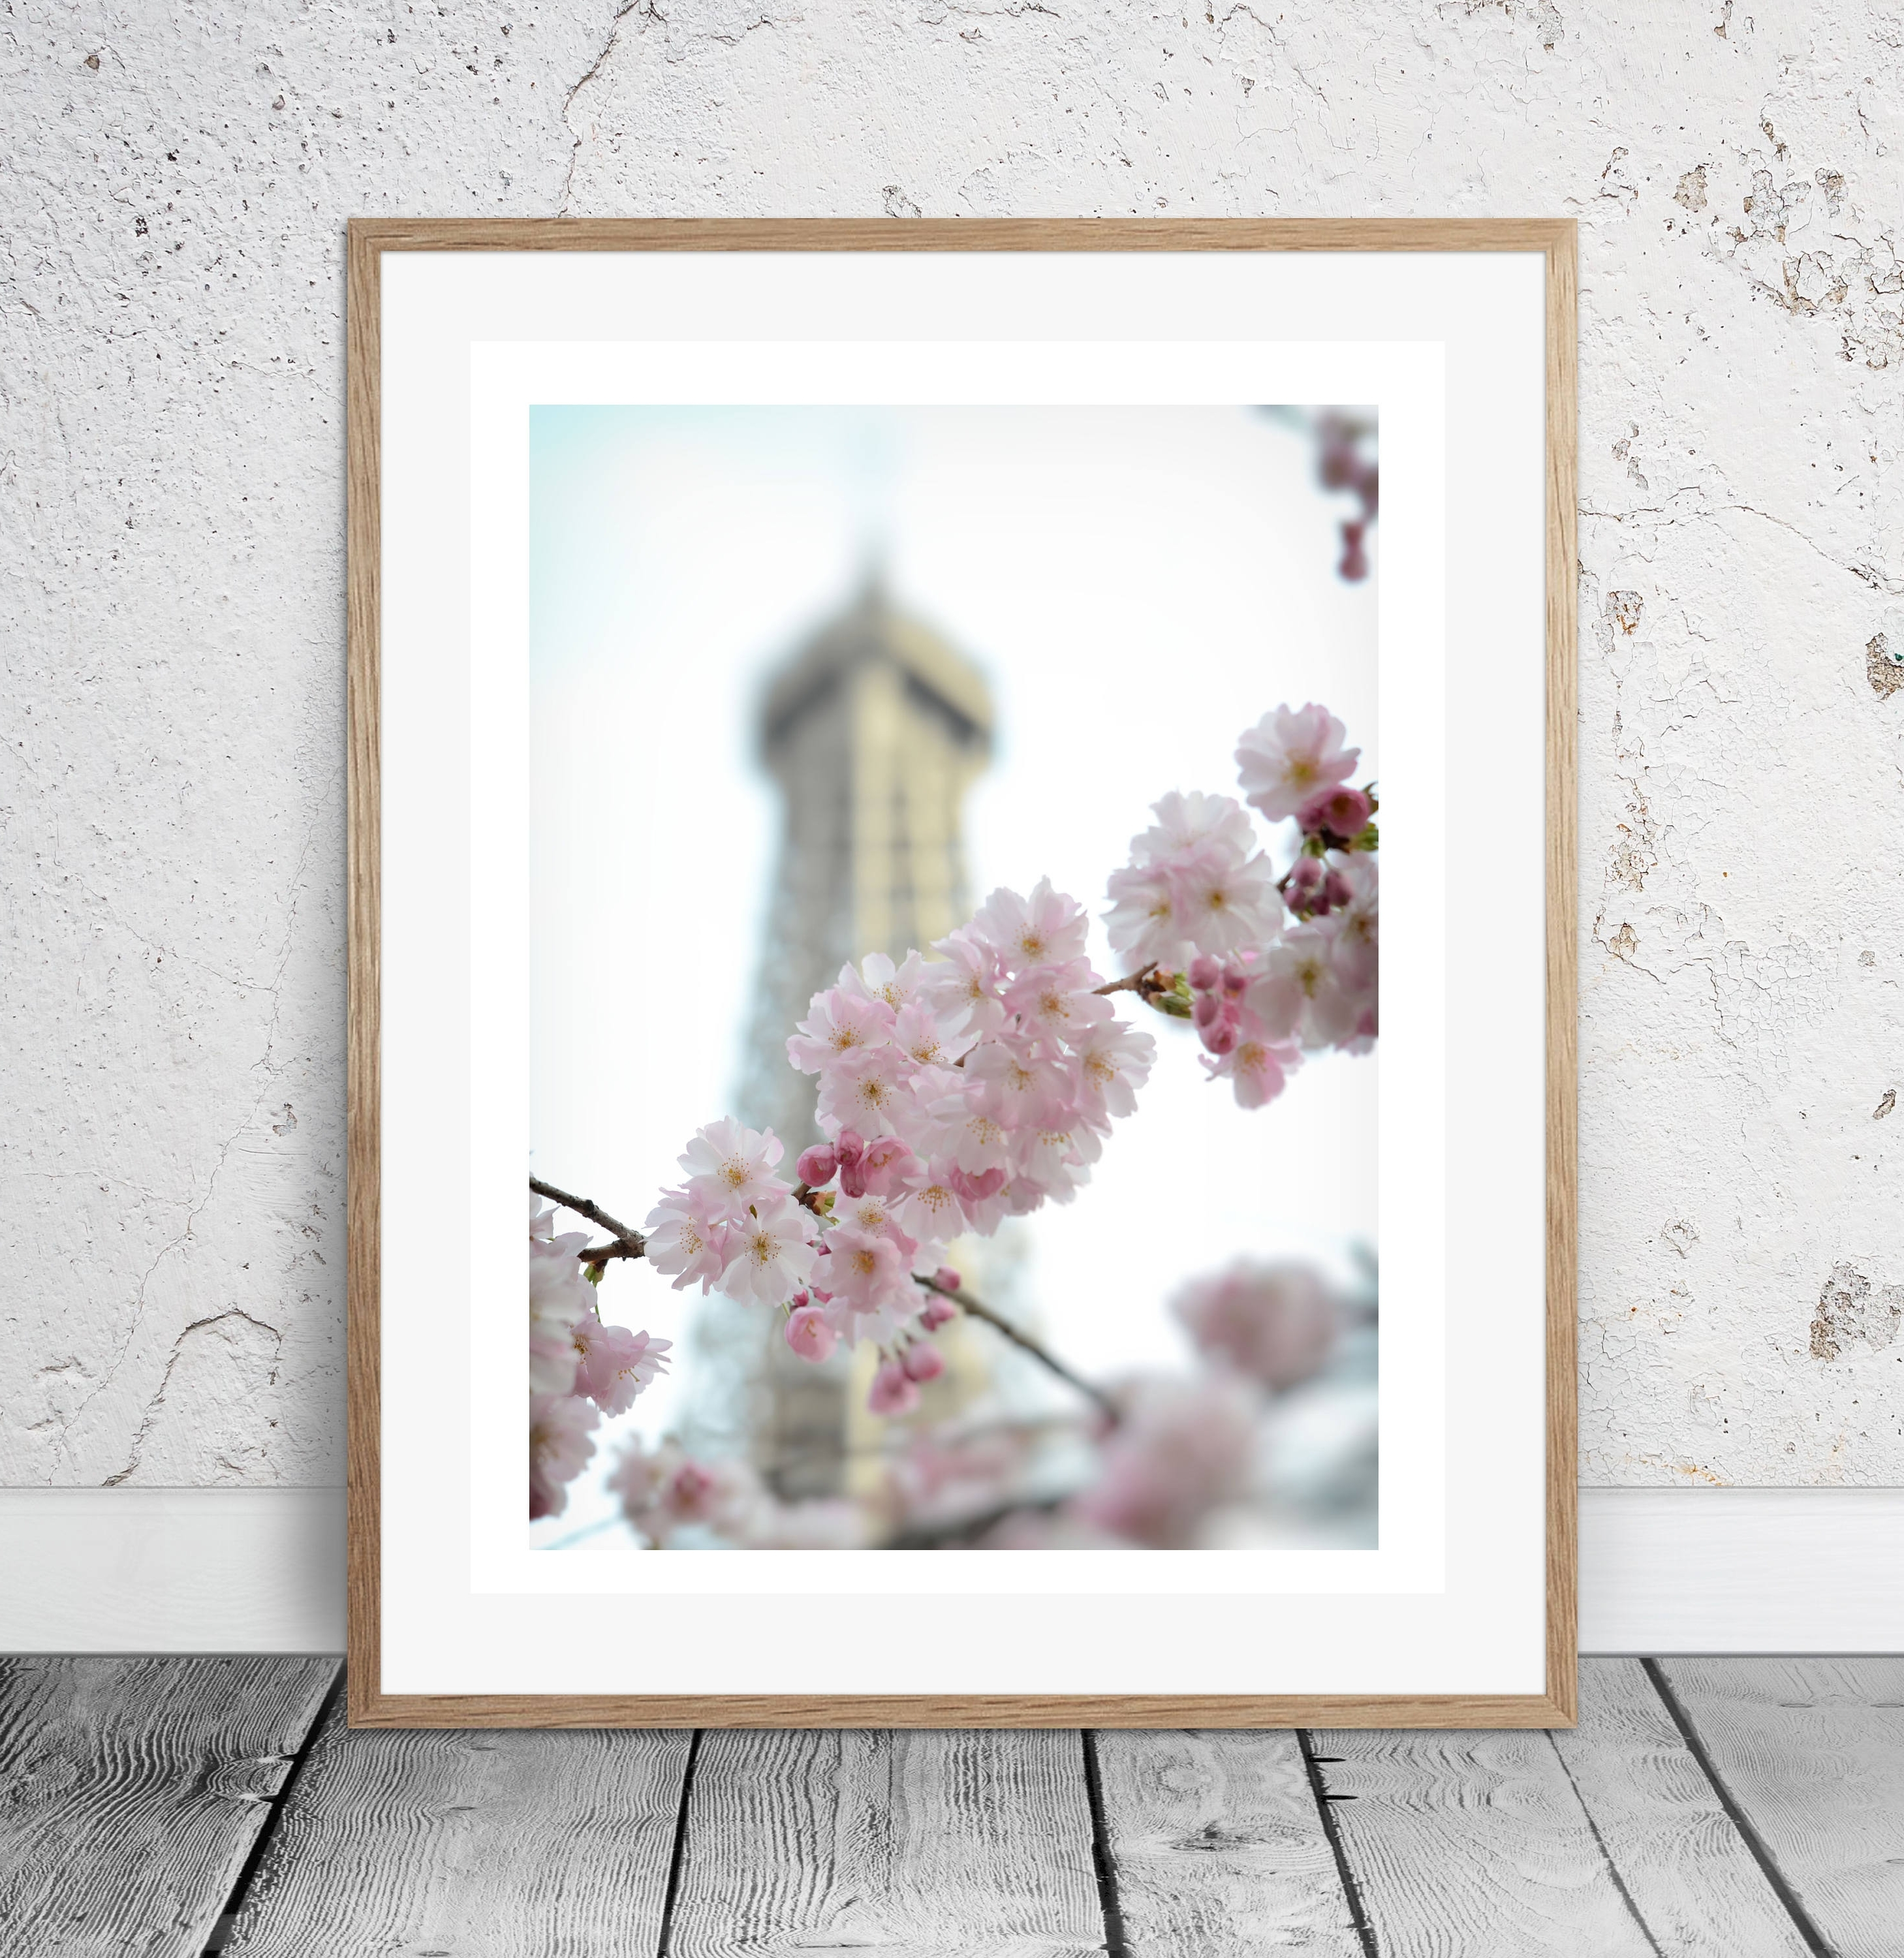 Well Known Cherry Blossoms, Paris, Wall Art, Photography, Digital Download Inside Paris Wall Art (View 14 of 15)